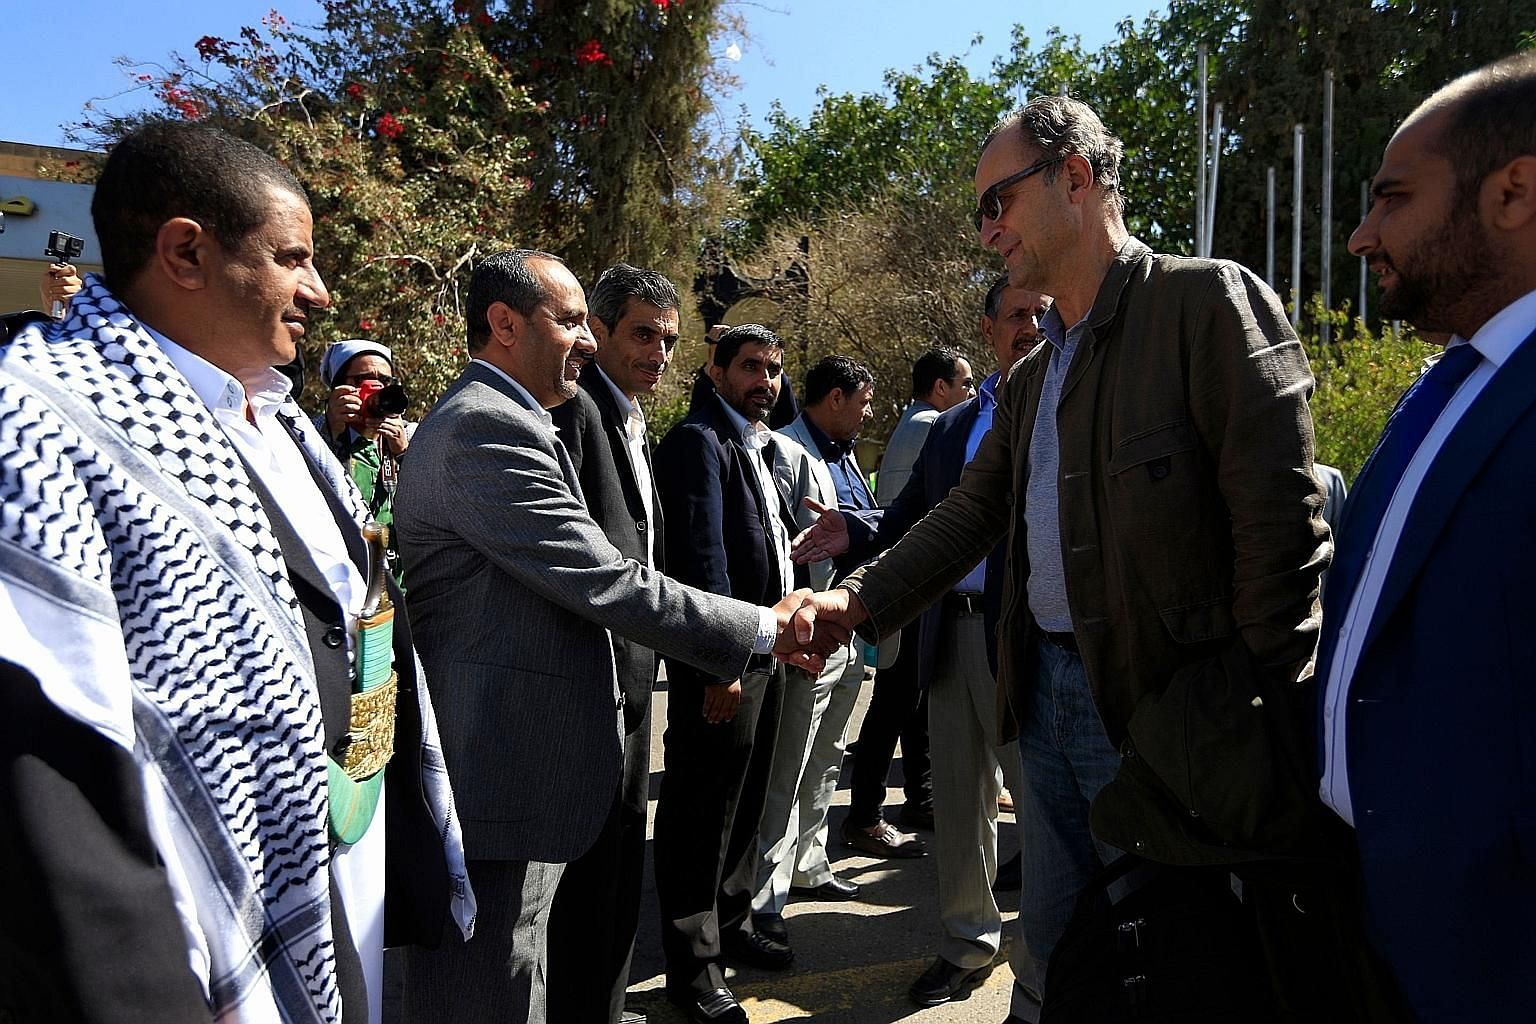 Retired Dutch general Patrick Cammaert (in sunglasses), who heads a UN team monitoring a ceasefire in Yemen's Hodeida, greeting officials upon his arrival in the Yemeni capital Sanaa yesterday.